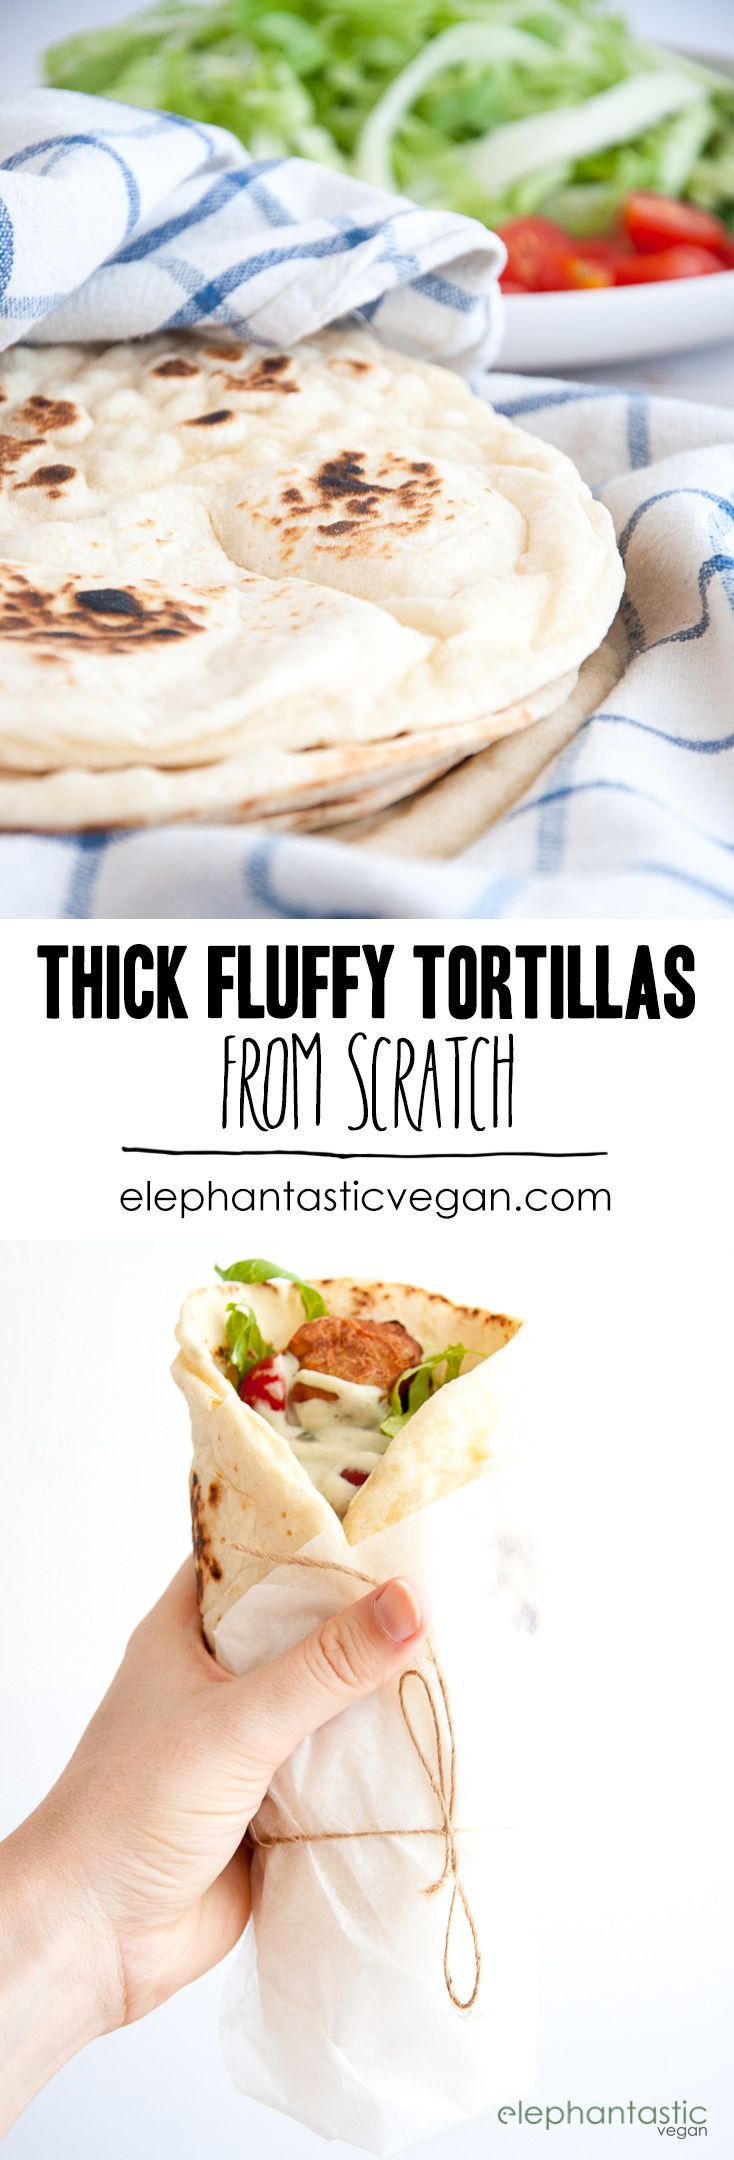 Thick Fluffy Tortillas from scratch | ElephantasticVegan.com